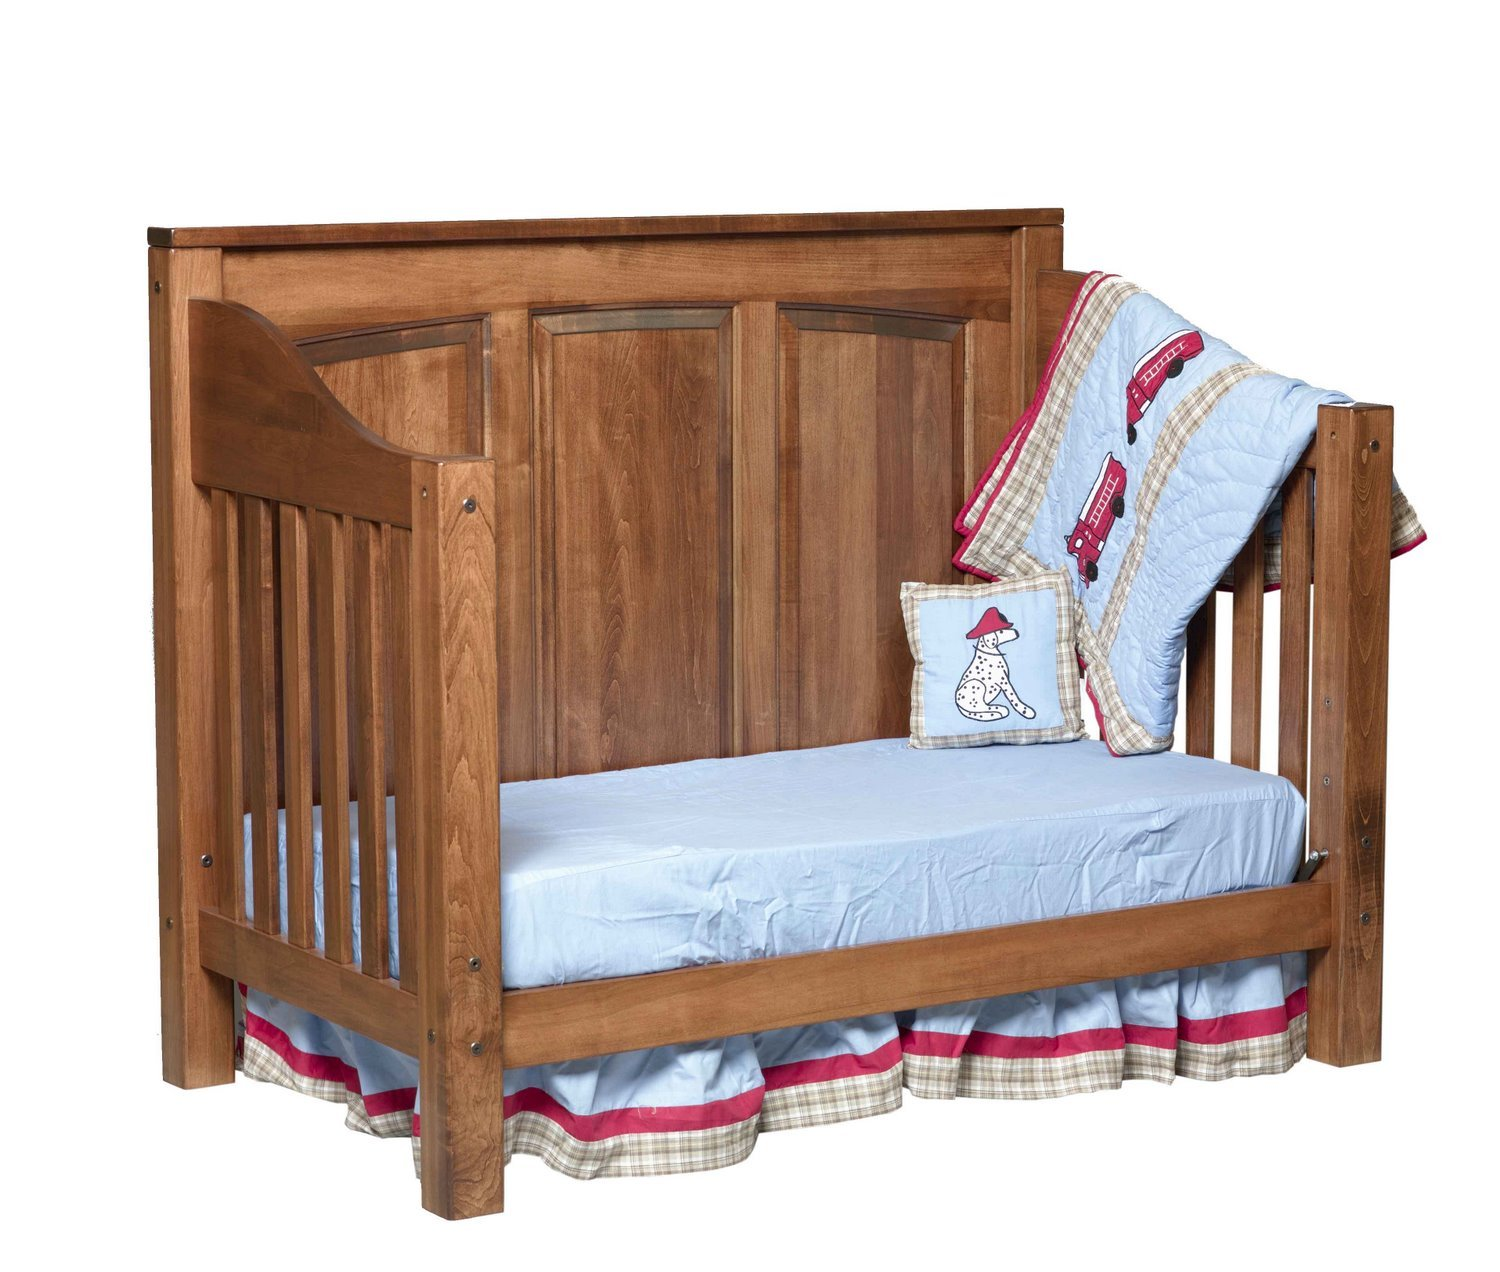 Dining Room Furniture Rochester Ny: Baby Furniture Store Rochester NY